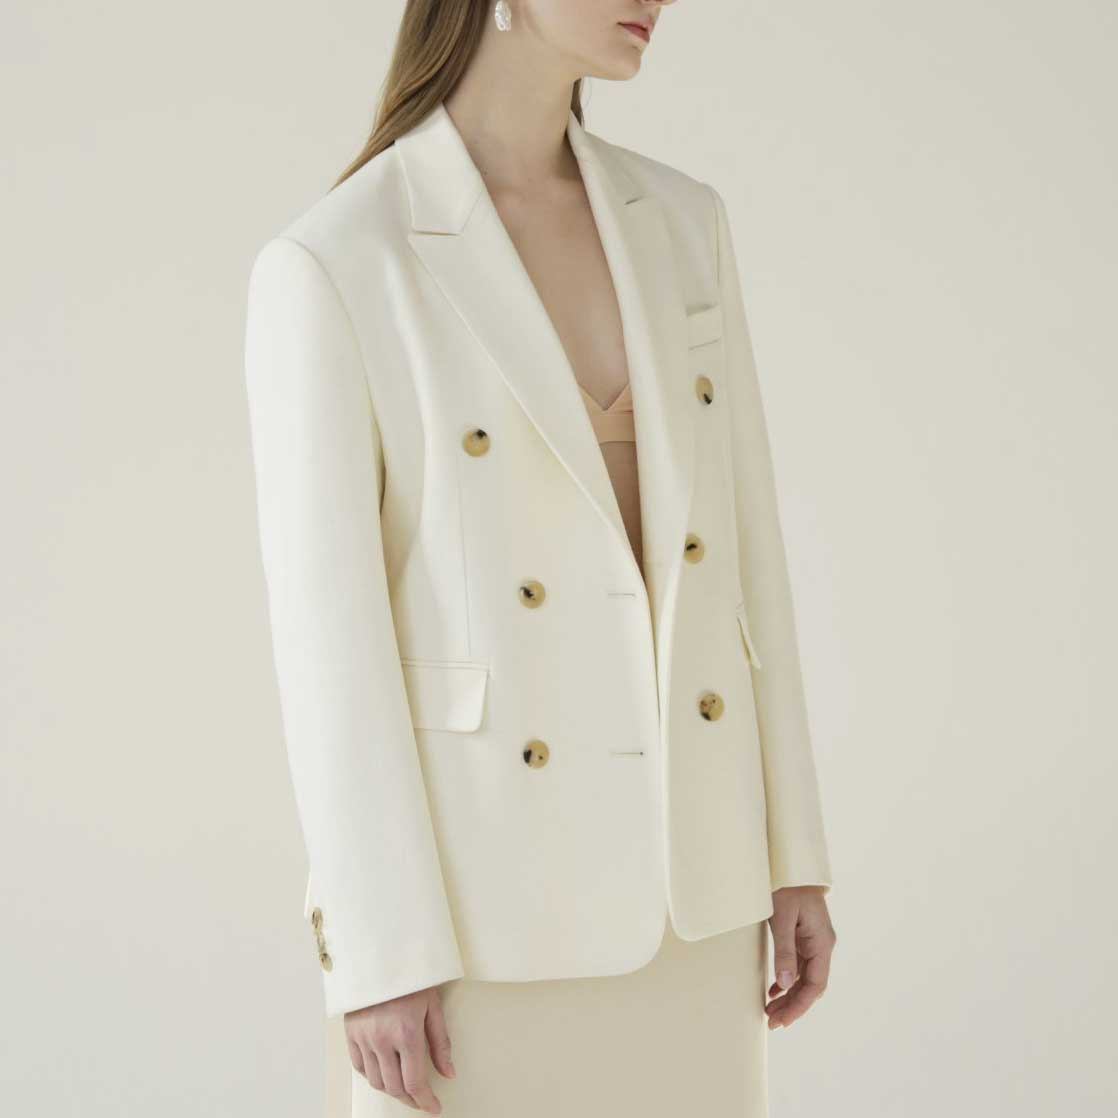 Ivory Marble Button Blazer - Marble Hive